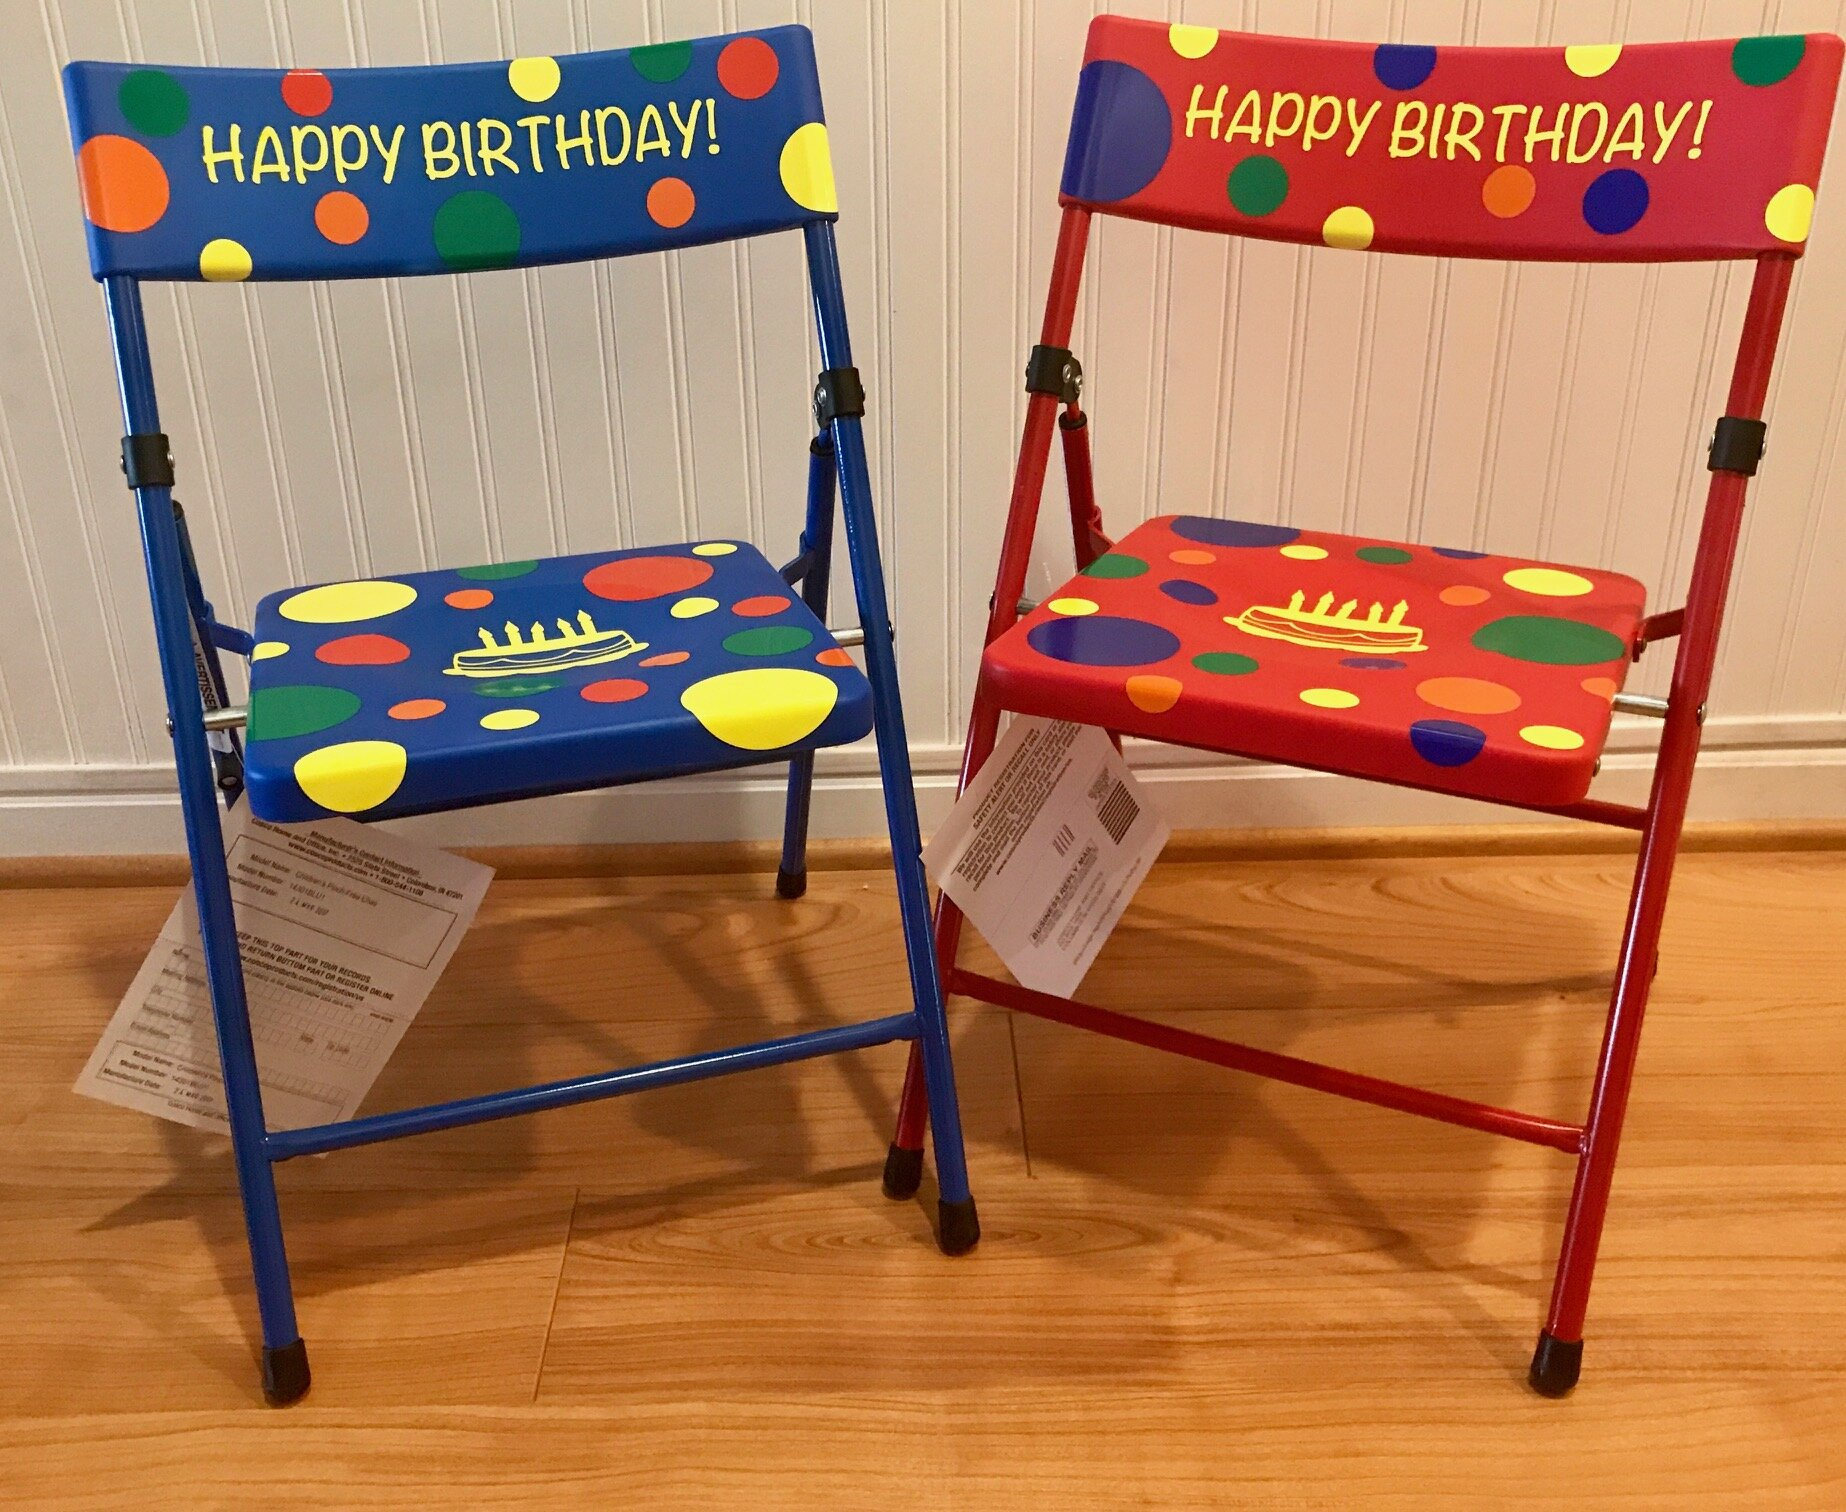 Happy Birthday Chairs Both Blue & Red.jpg